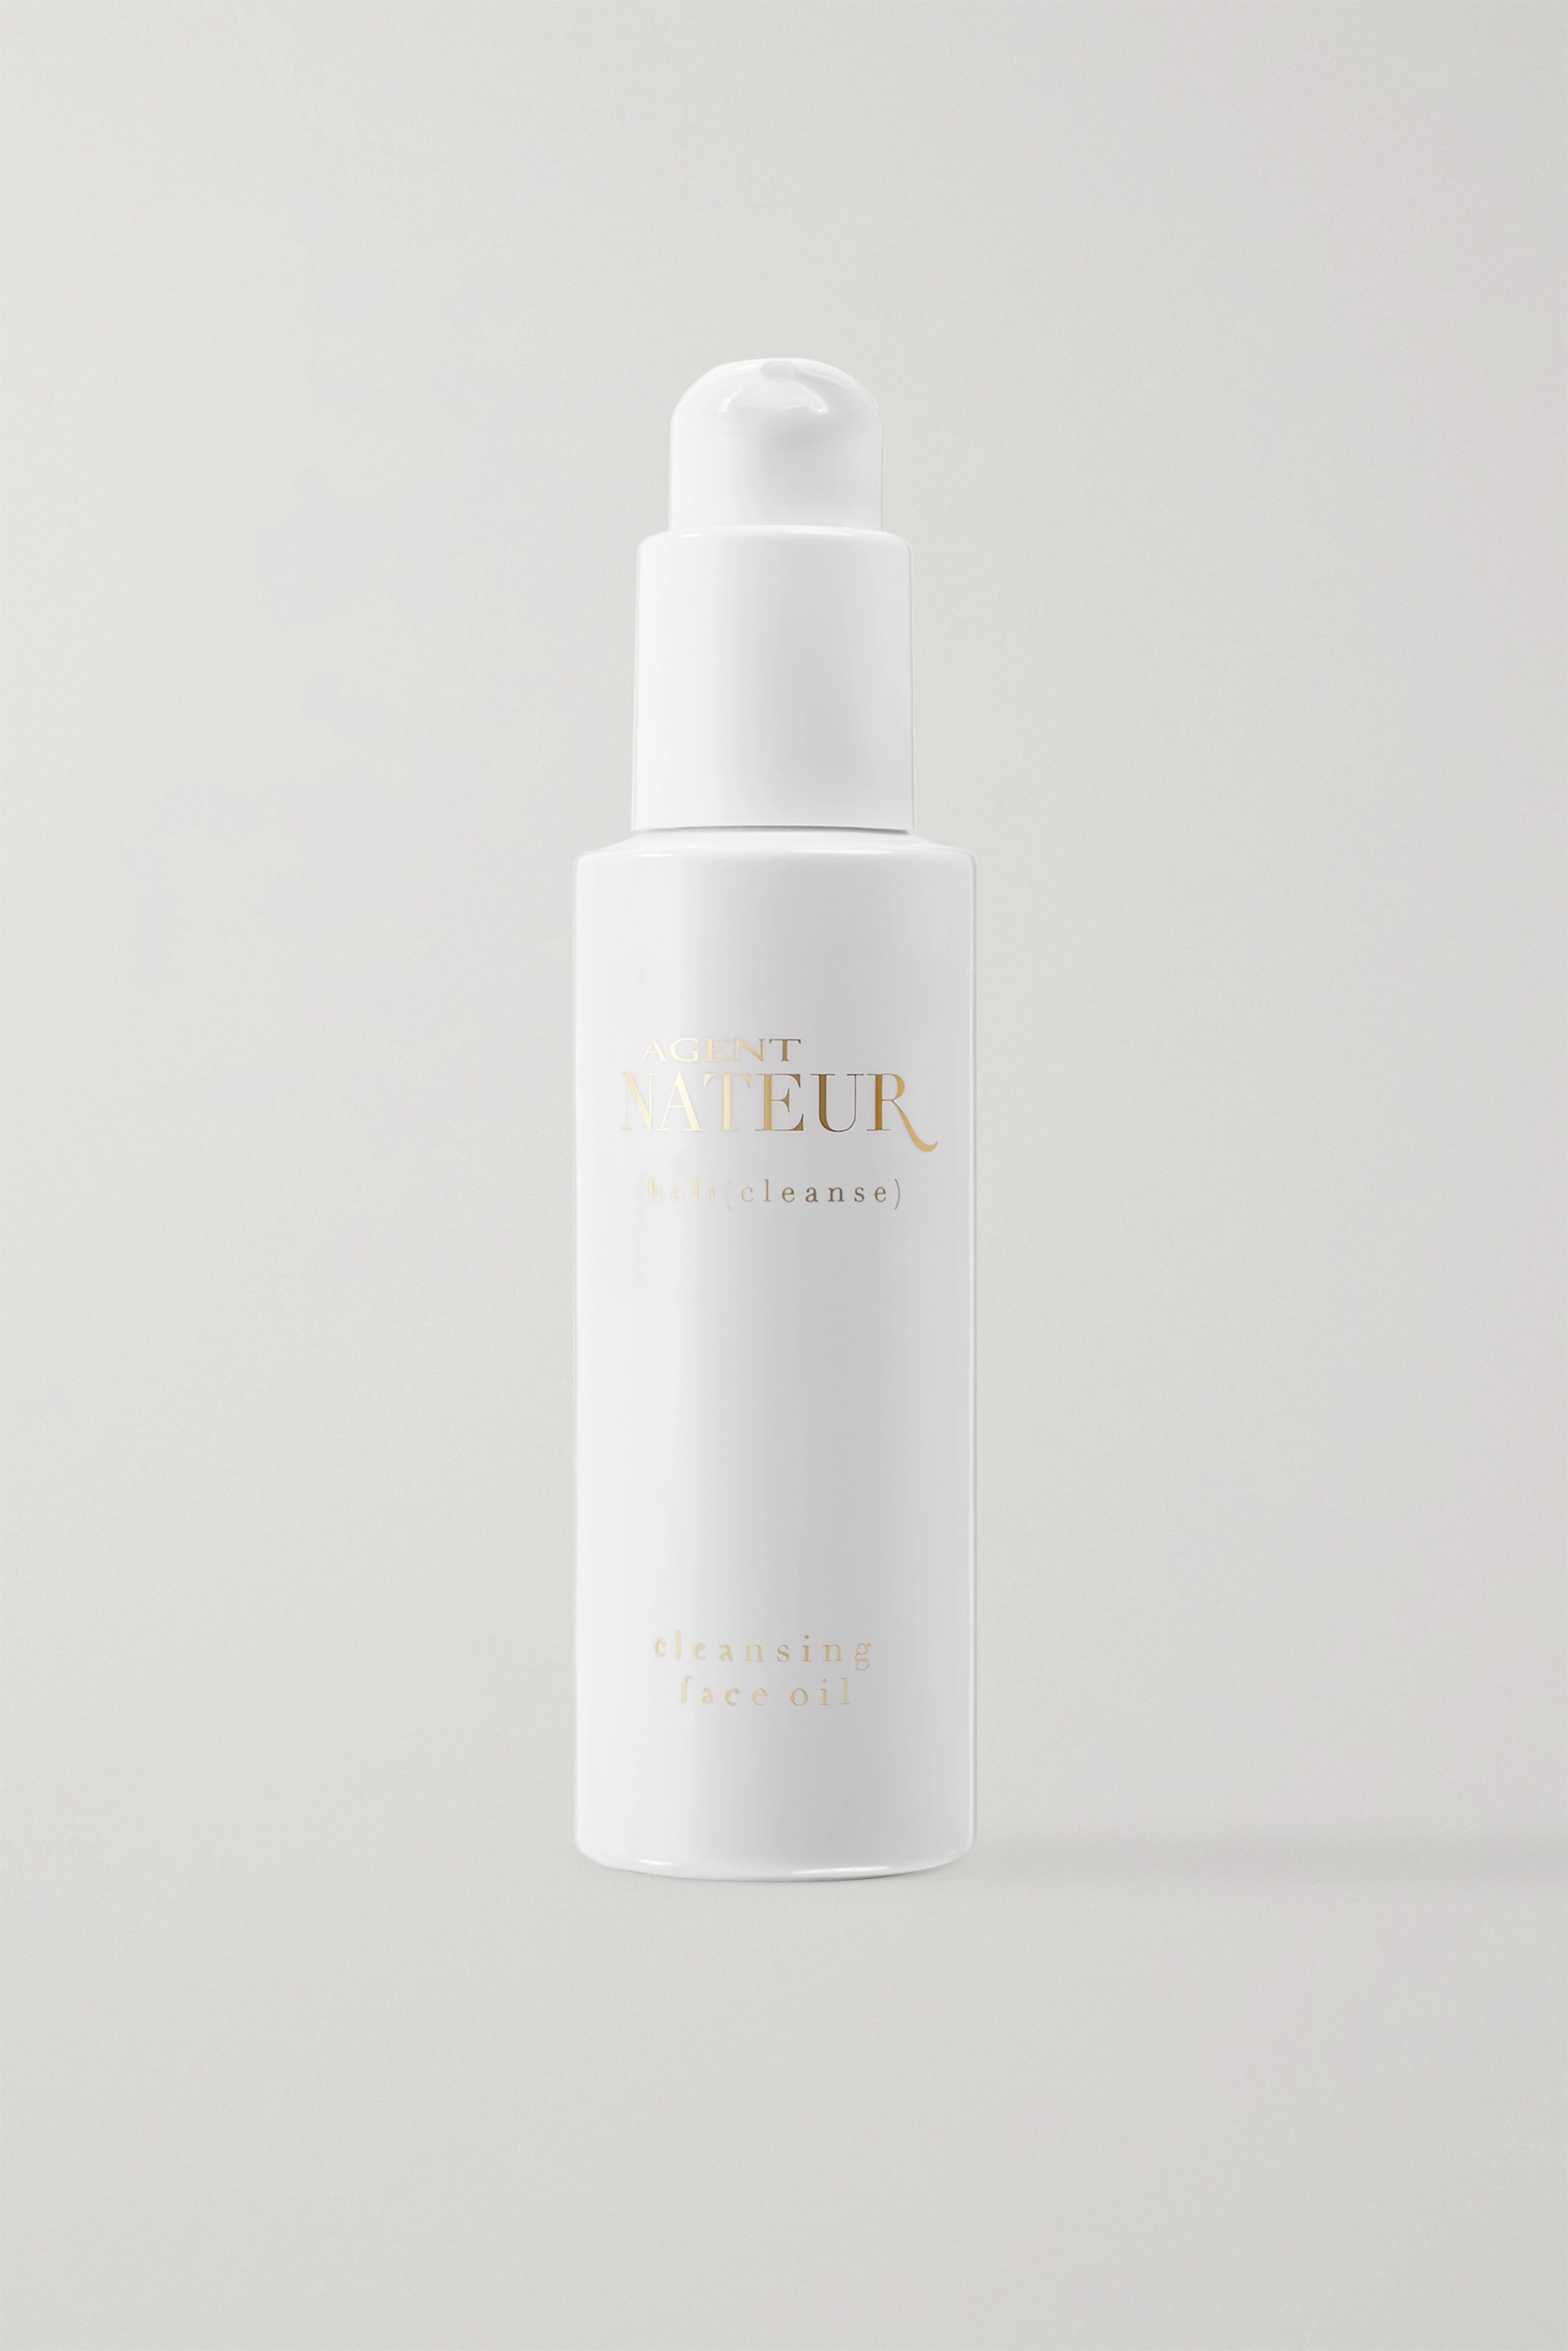 Agent Nateur Holi (Cleanse) Cleansing Face Oil, 120ml